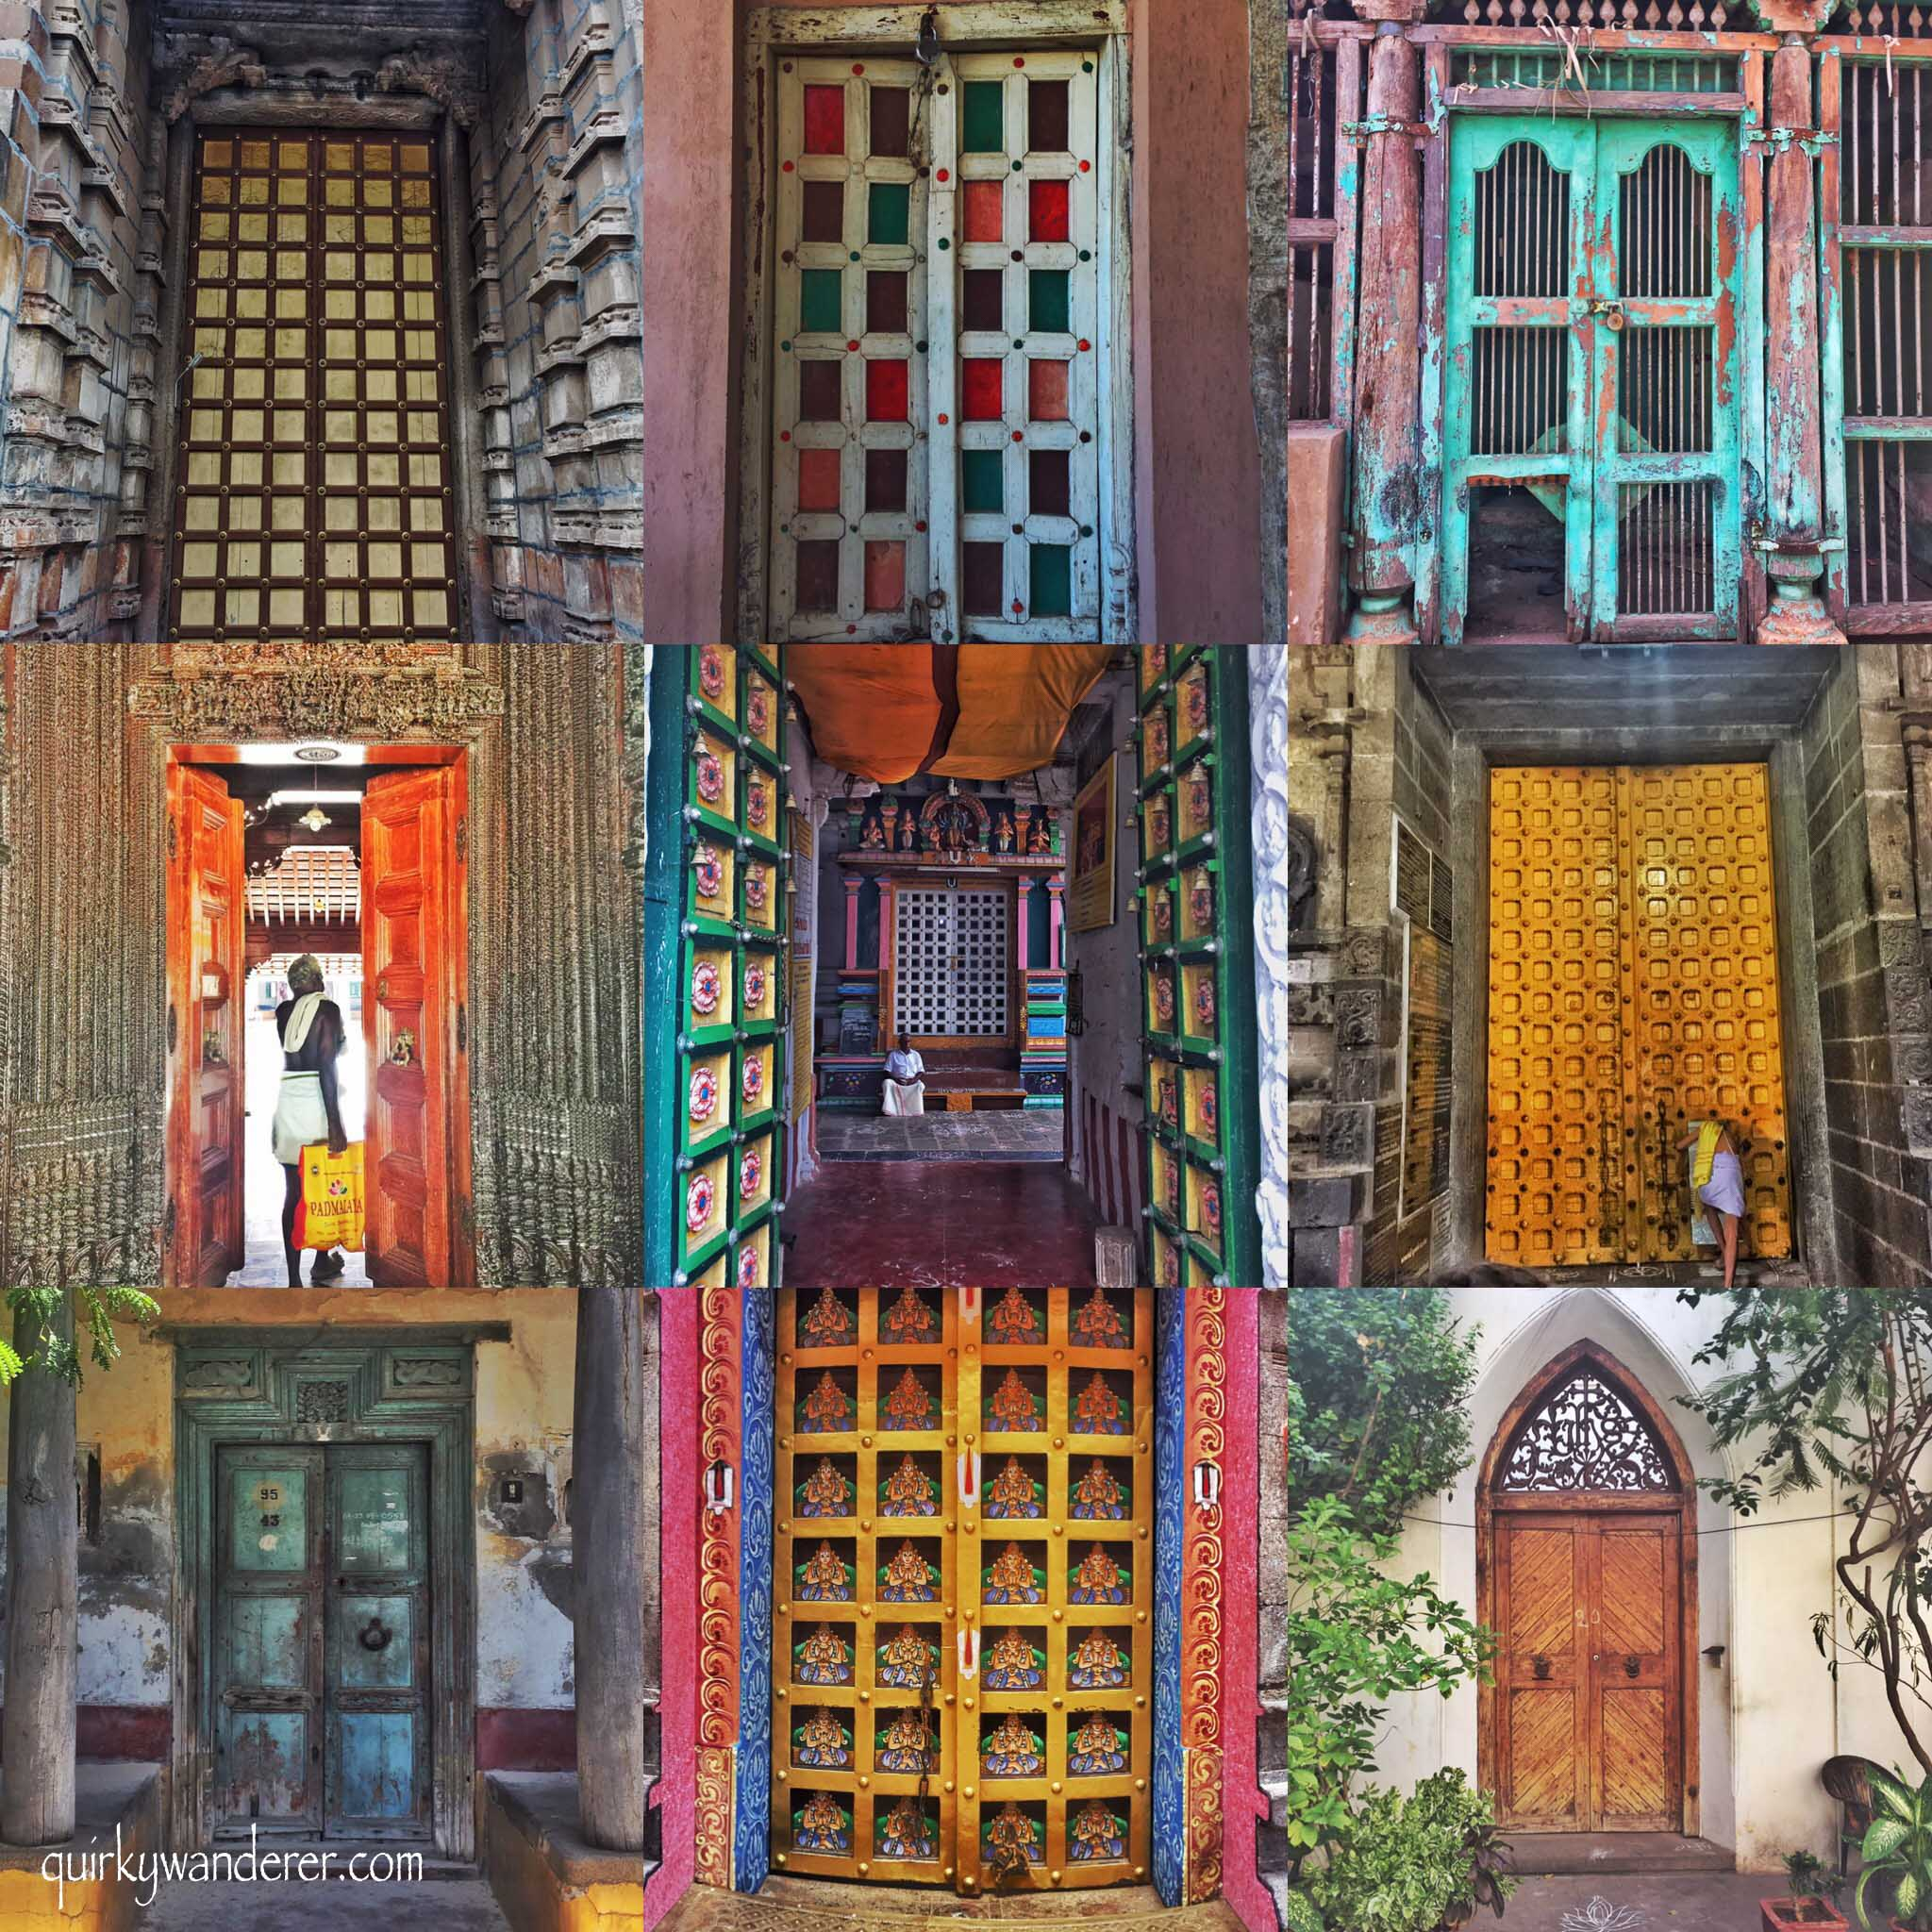 Doors in Tamil Nadu